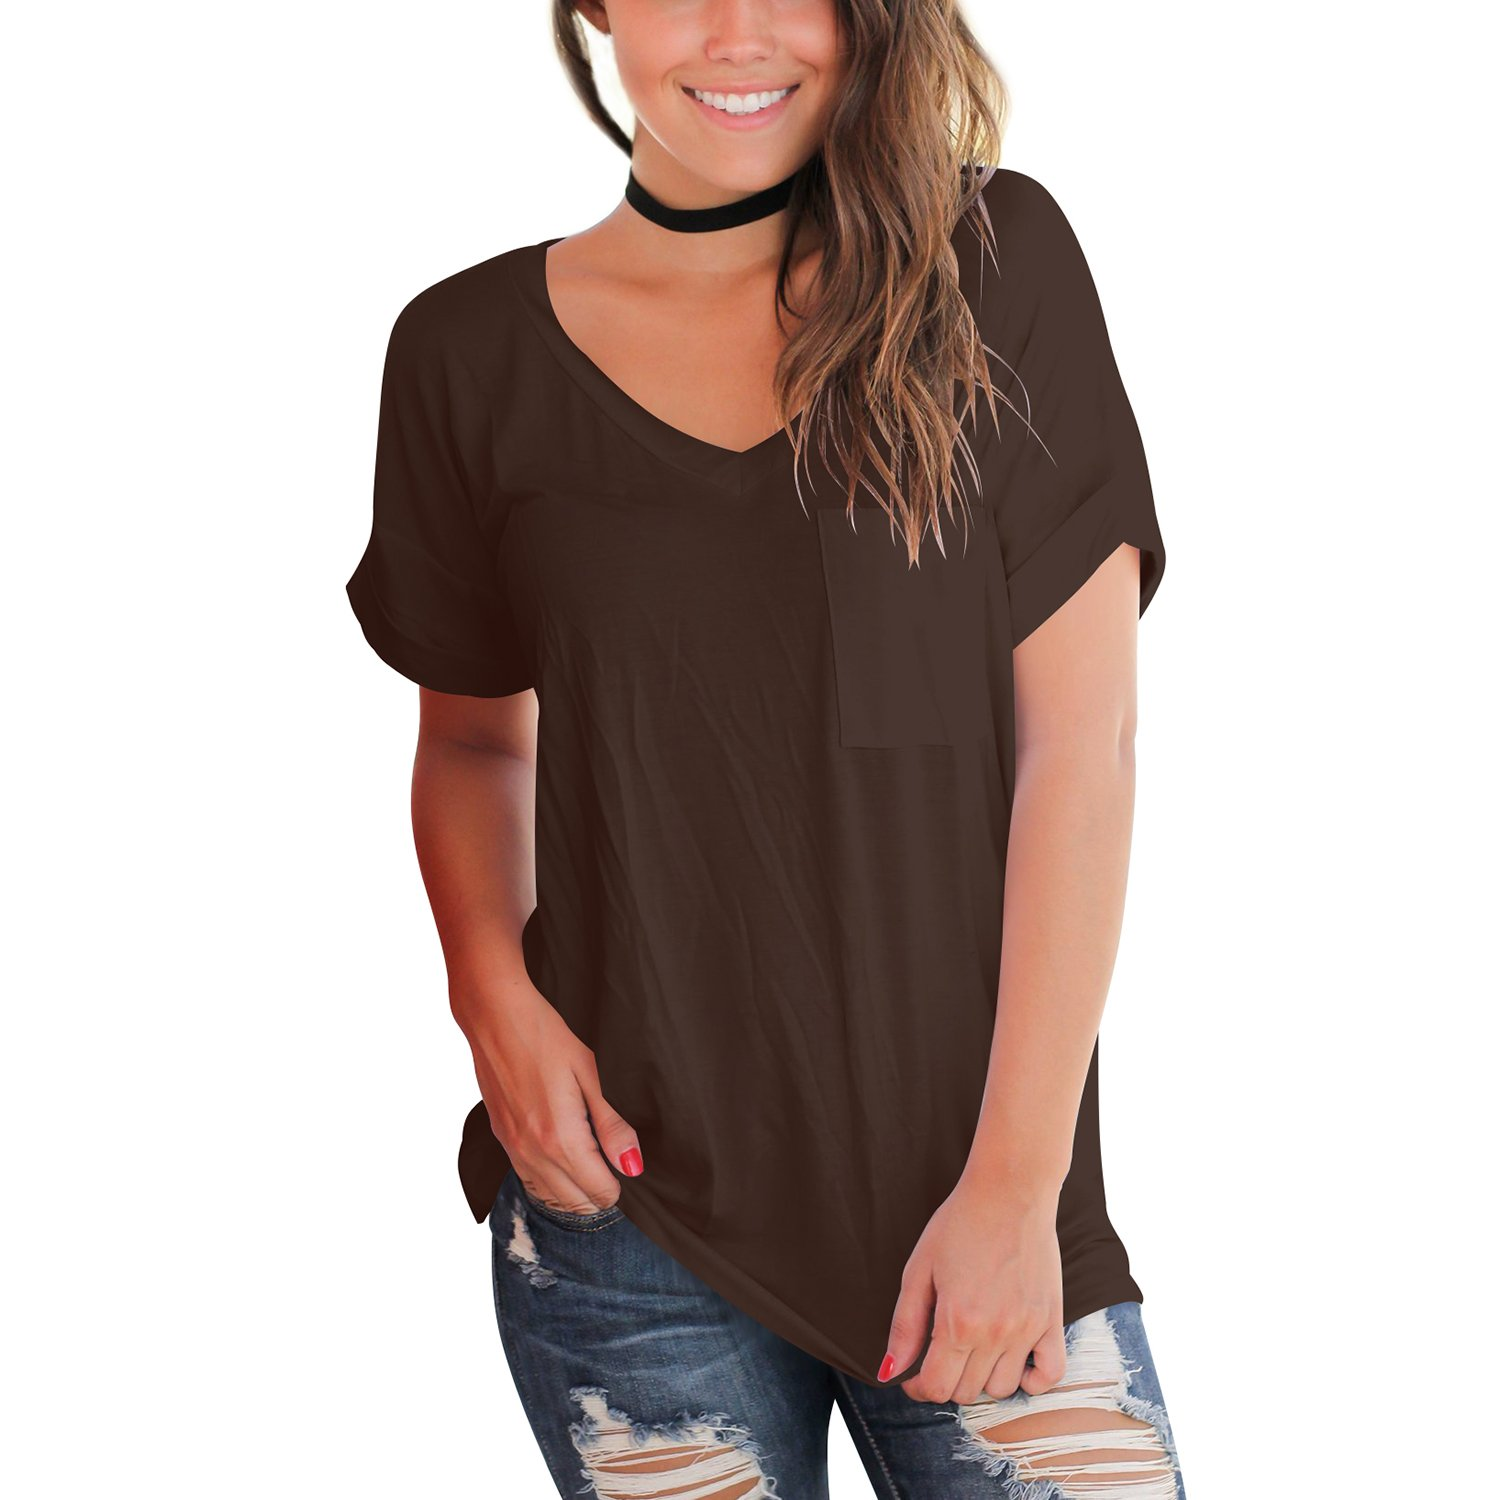 YS.DAMAI Women's Summer Basic Tee Tops Casual Loose Short Sleeve T Shirt with Front Pocket(Coffee, XL)